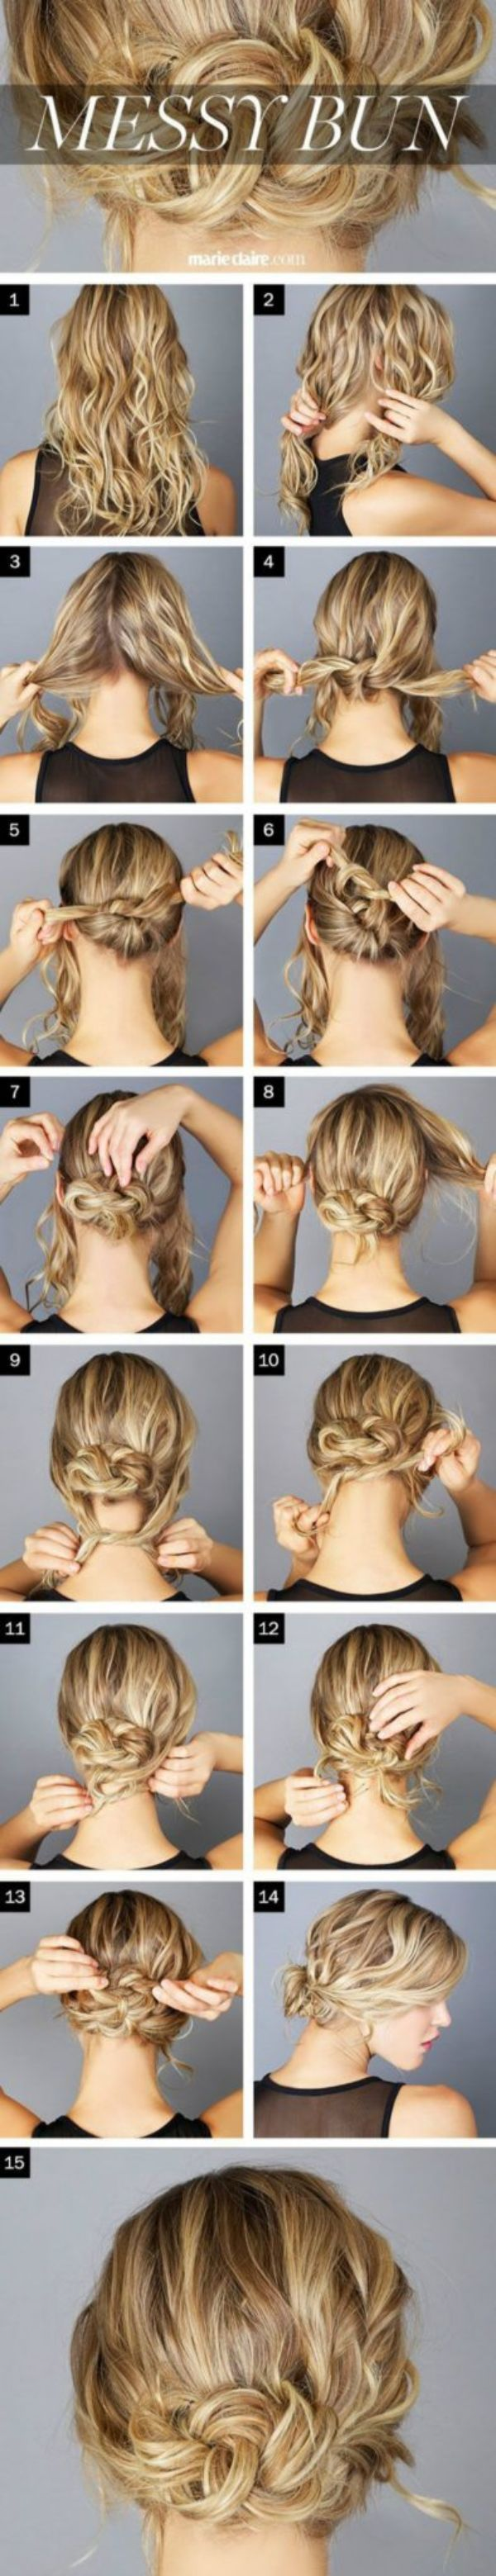 Tie Up The Nodules To Remember Simple Hairstyles For A Strict Dress Code